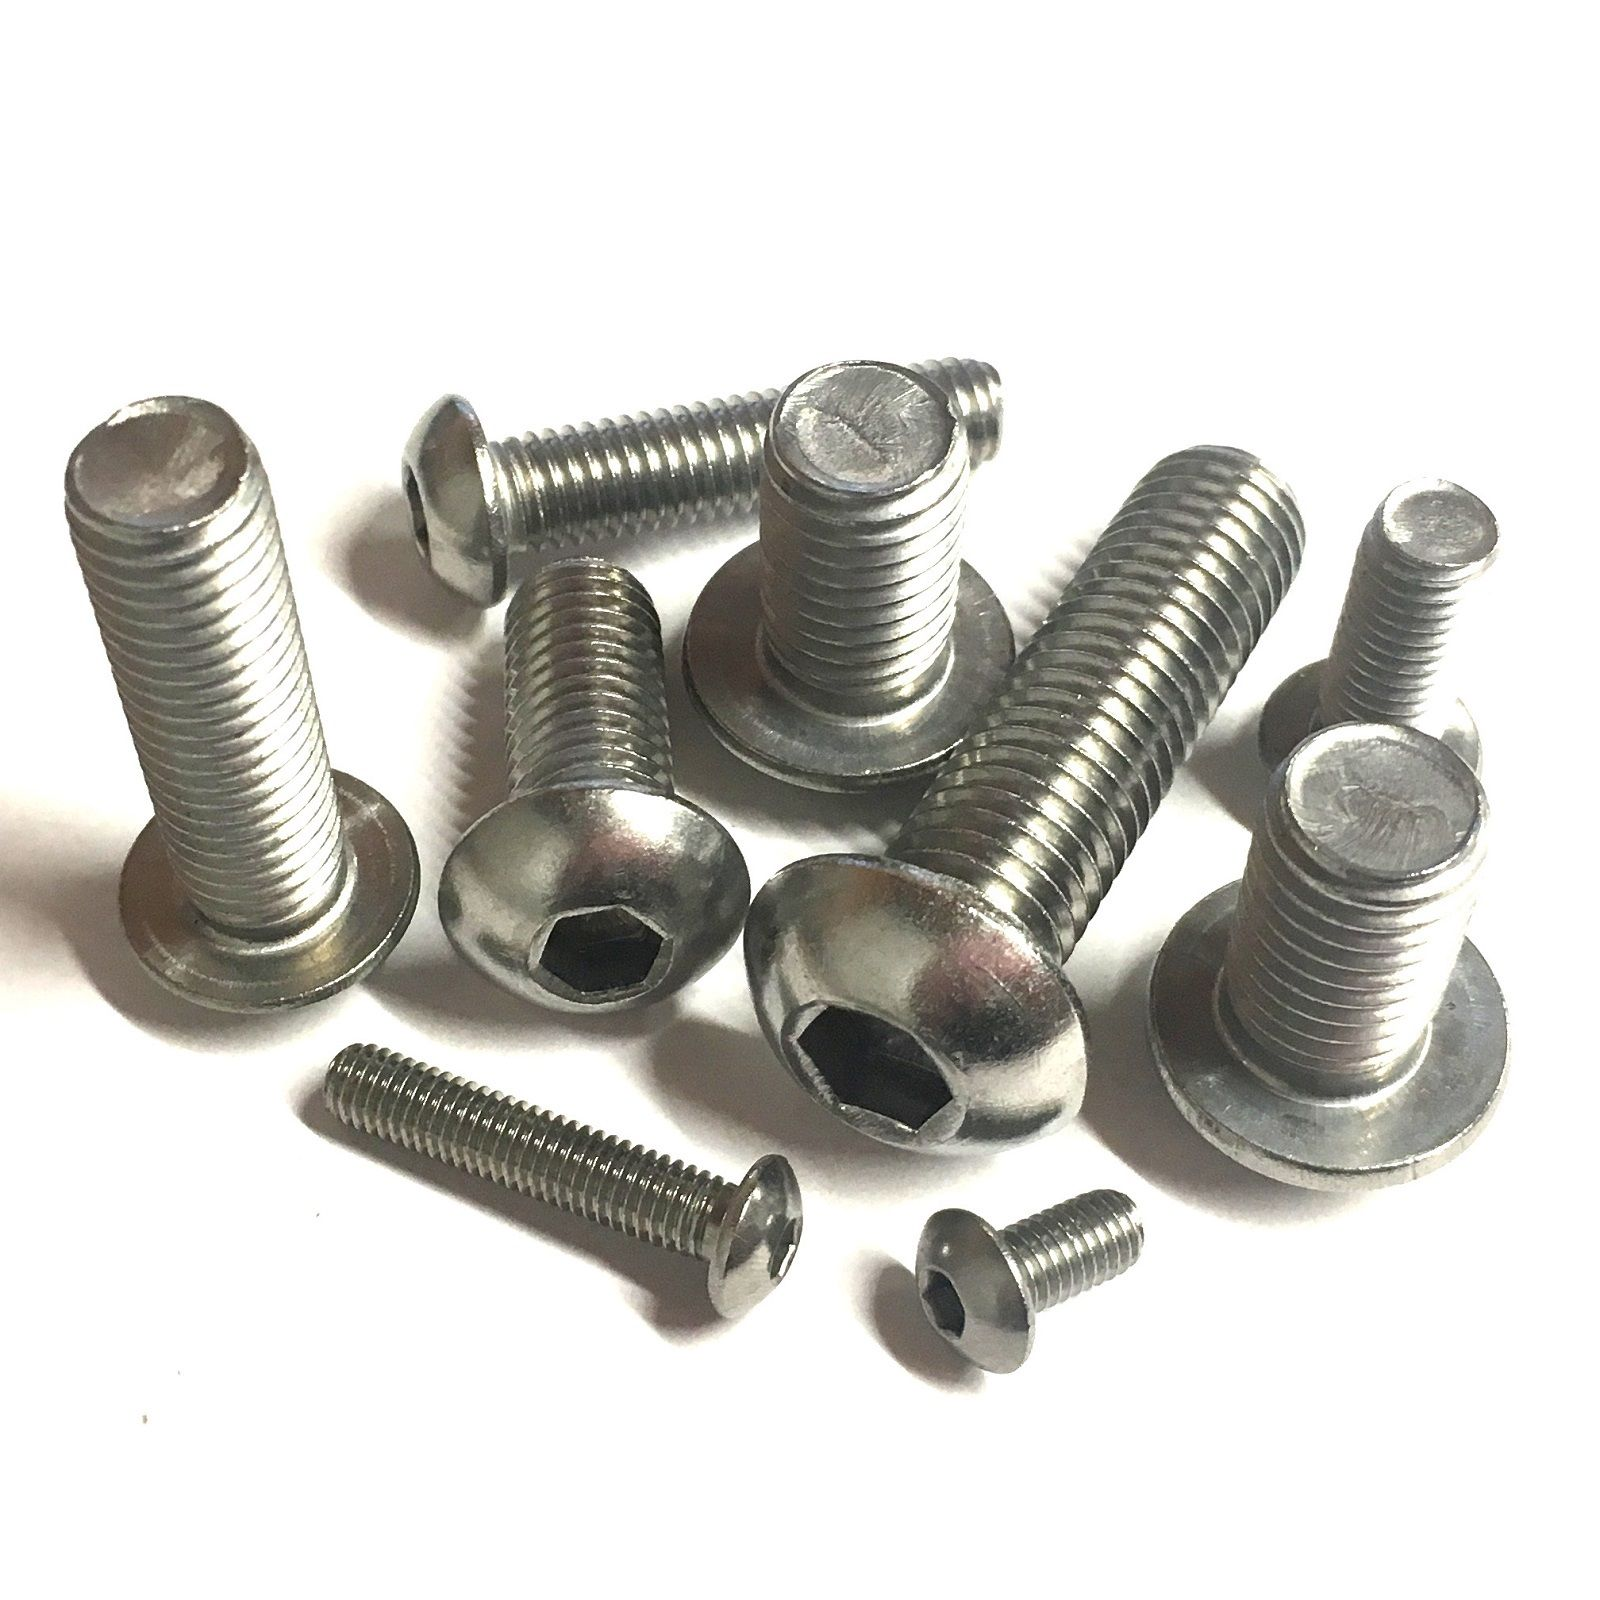 DOME HEAD ALLEN SOCKET BOLTS A2 STAINLESS STEEL M3 FLANGED BUTTON HEAD SCREWS